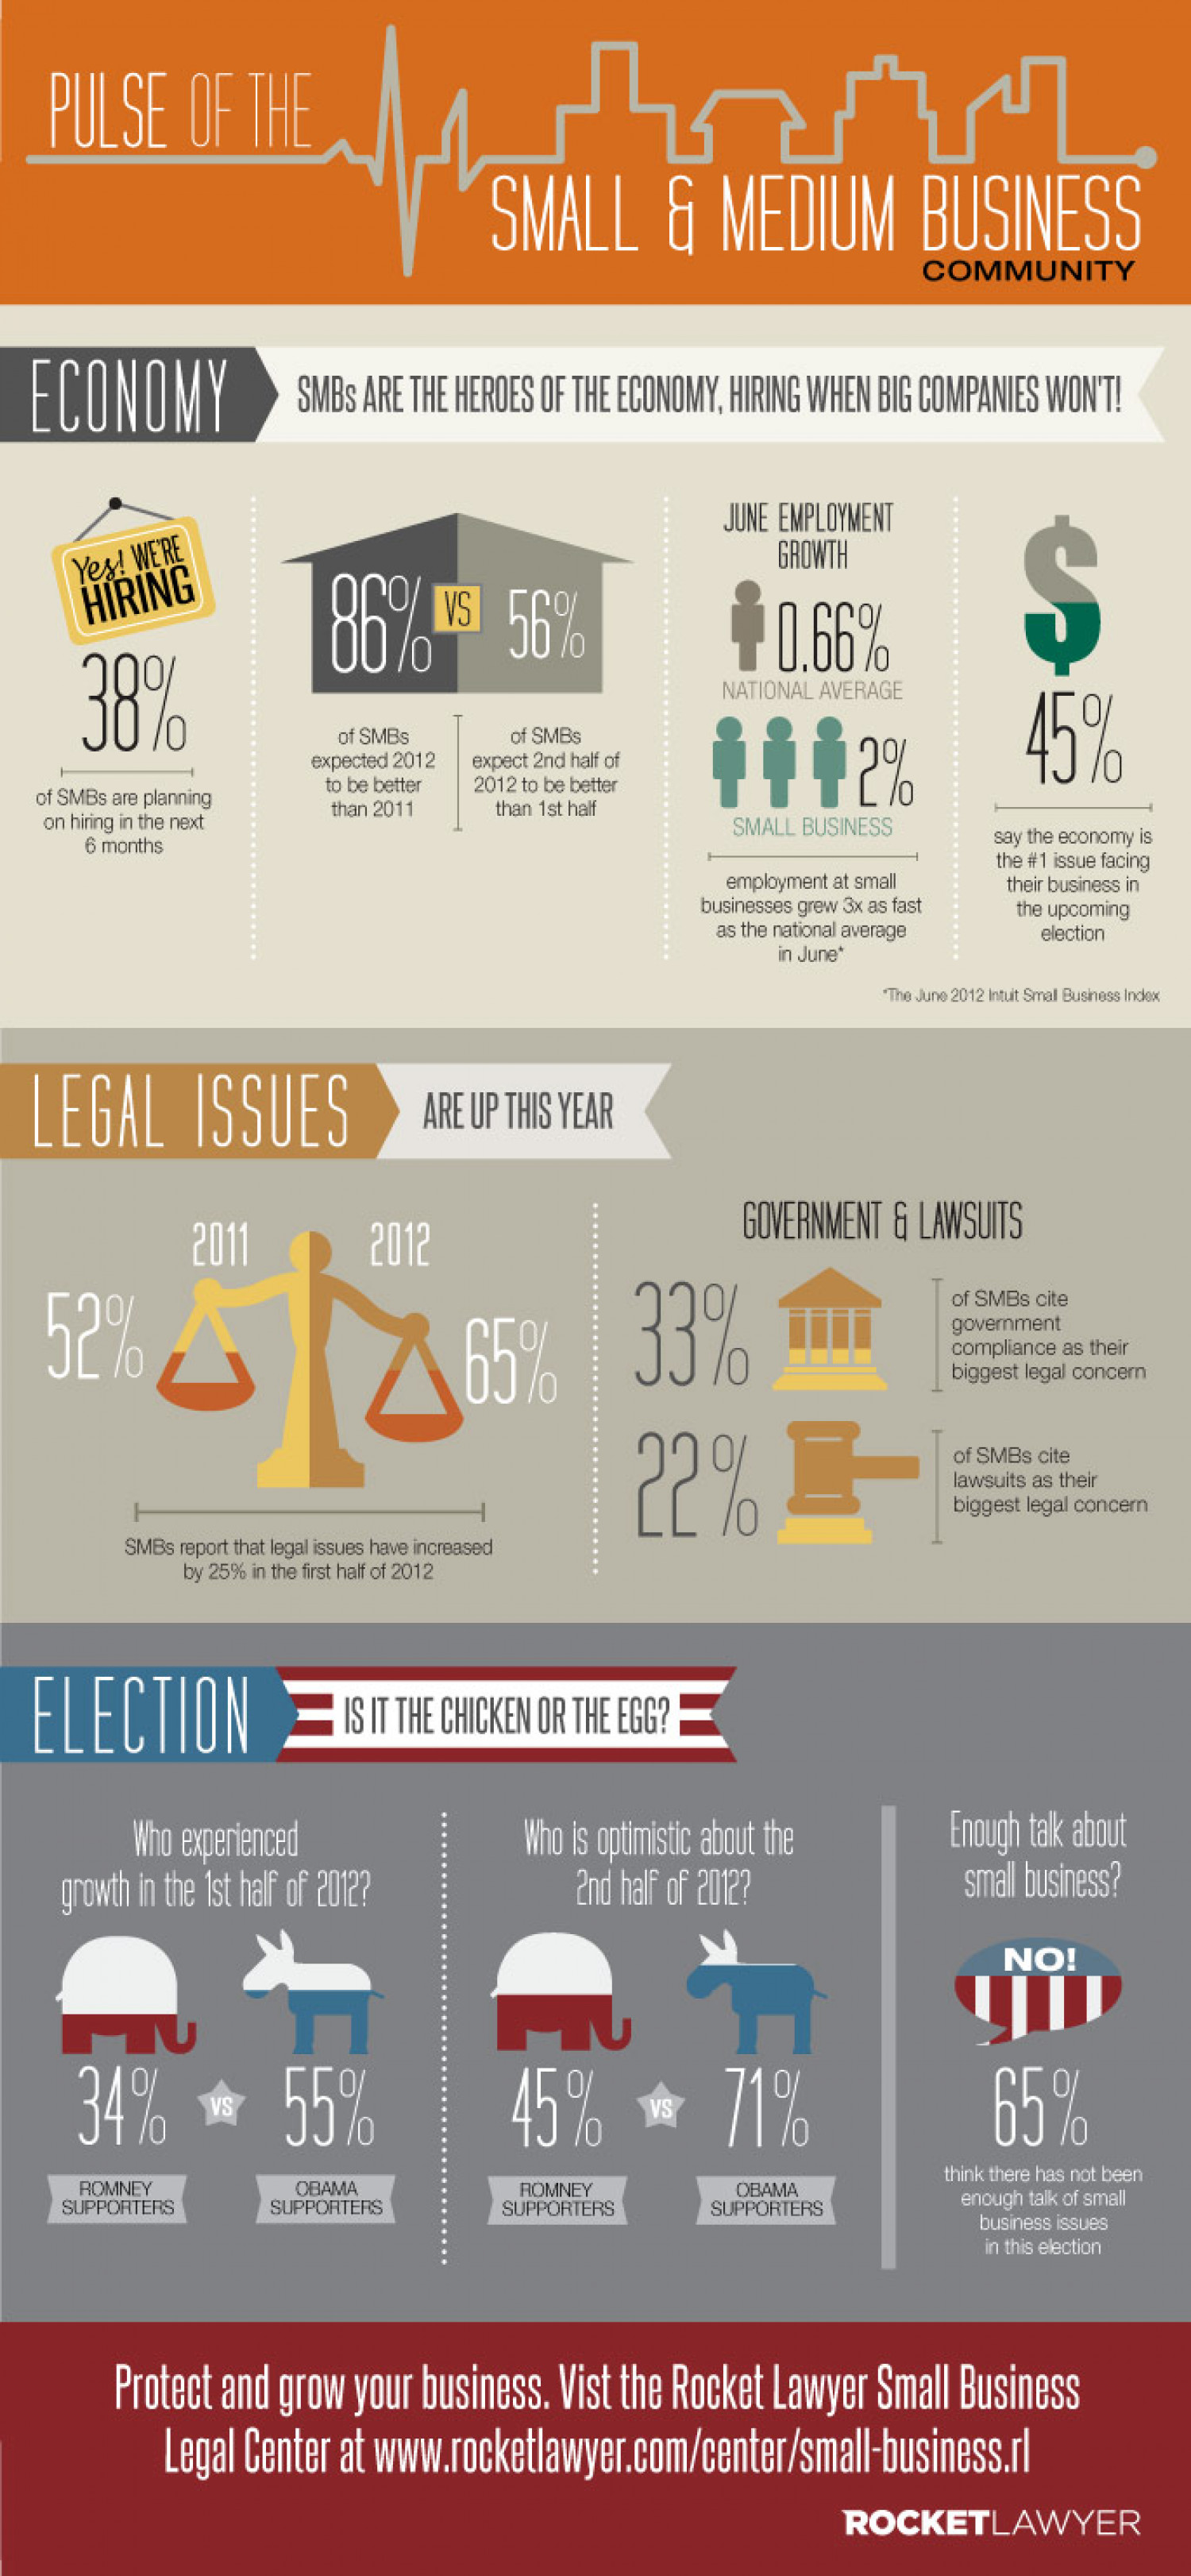 Pulse of the Small and Medium Business Community 2012 Infographic